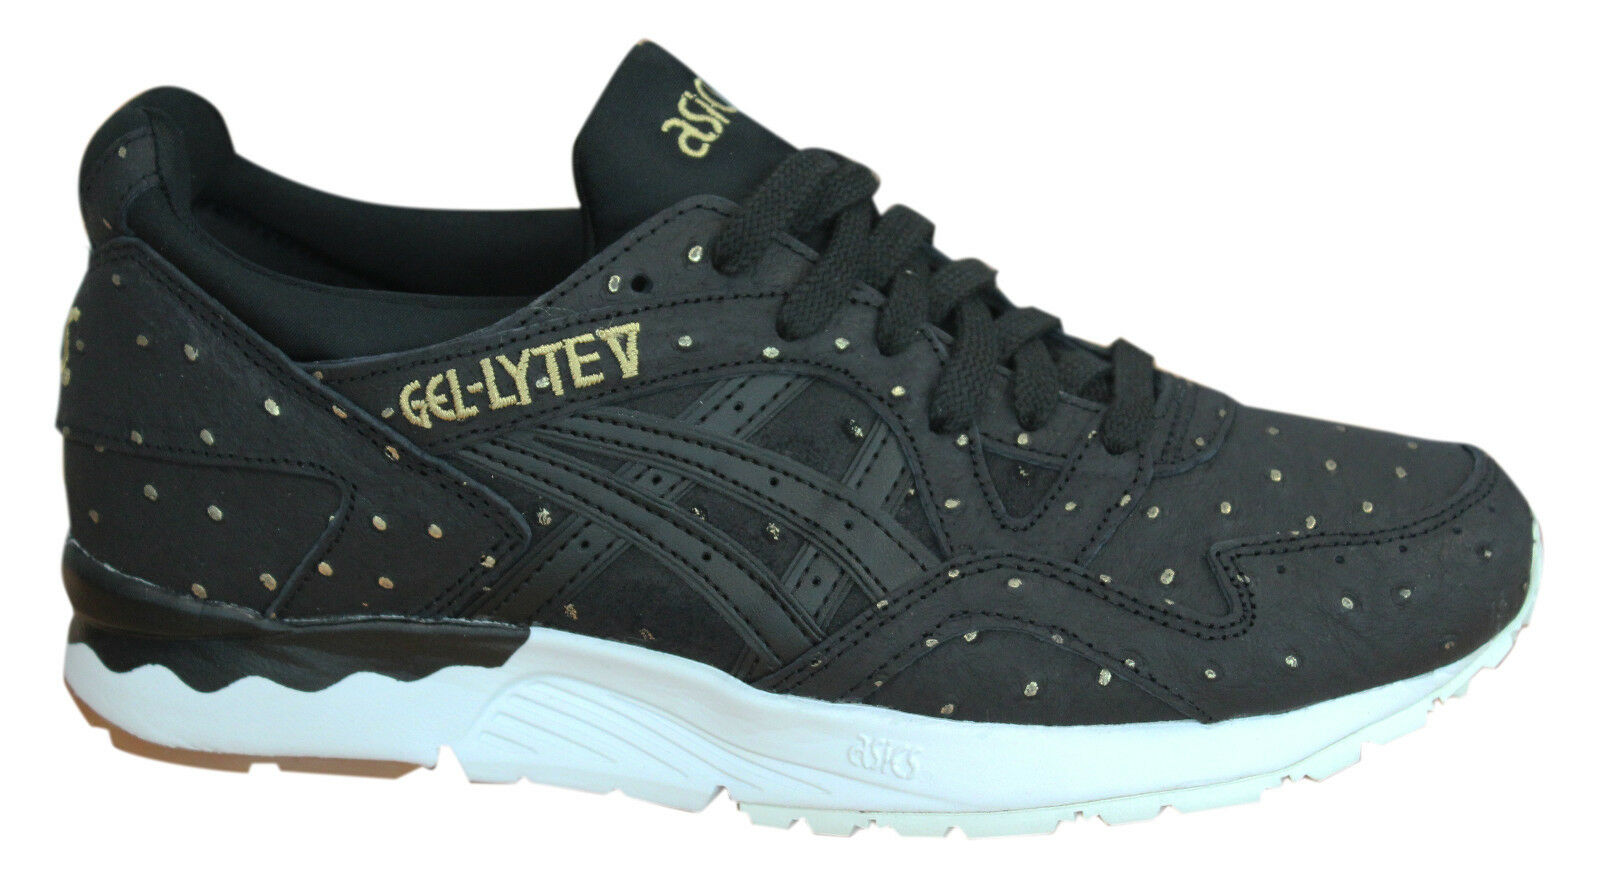 Asics Gel-Lyte V Lace Up Black White Leather Womens Trainers H785L 9090 P3 The latest discount shoes for men and women